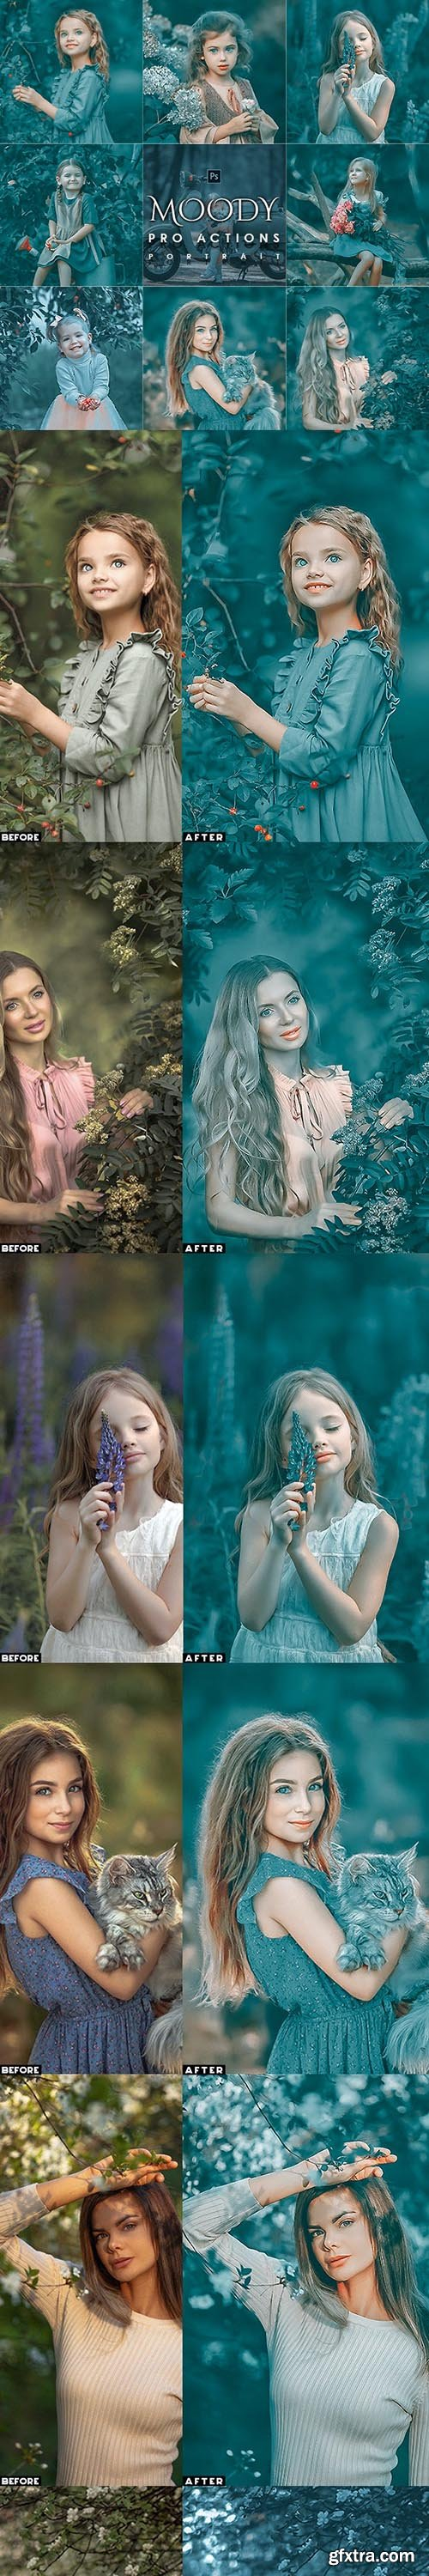 GraphicRiver - Moody Photoshop Actions 28393221